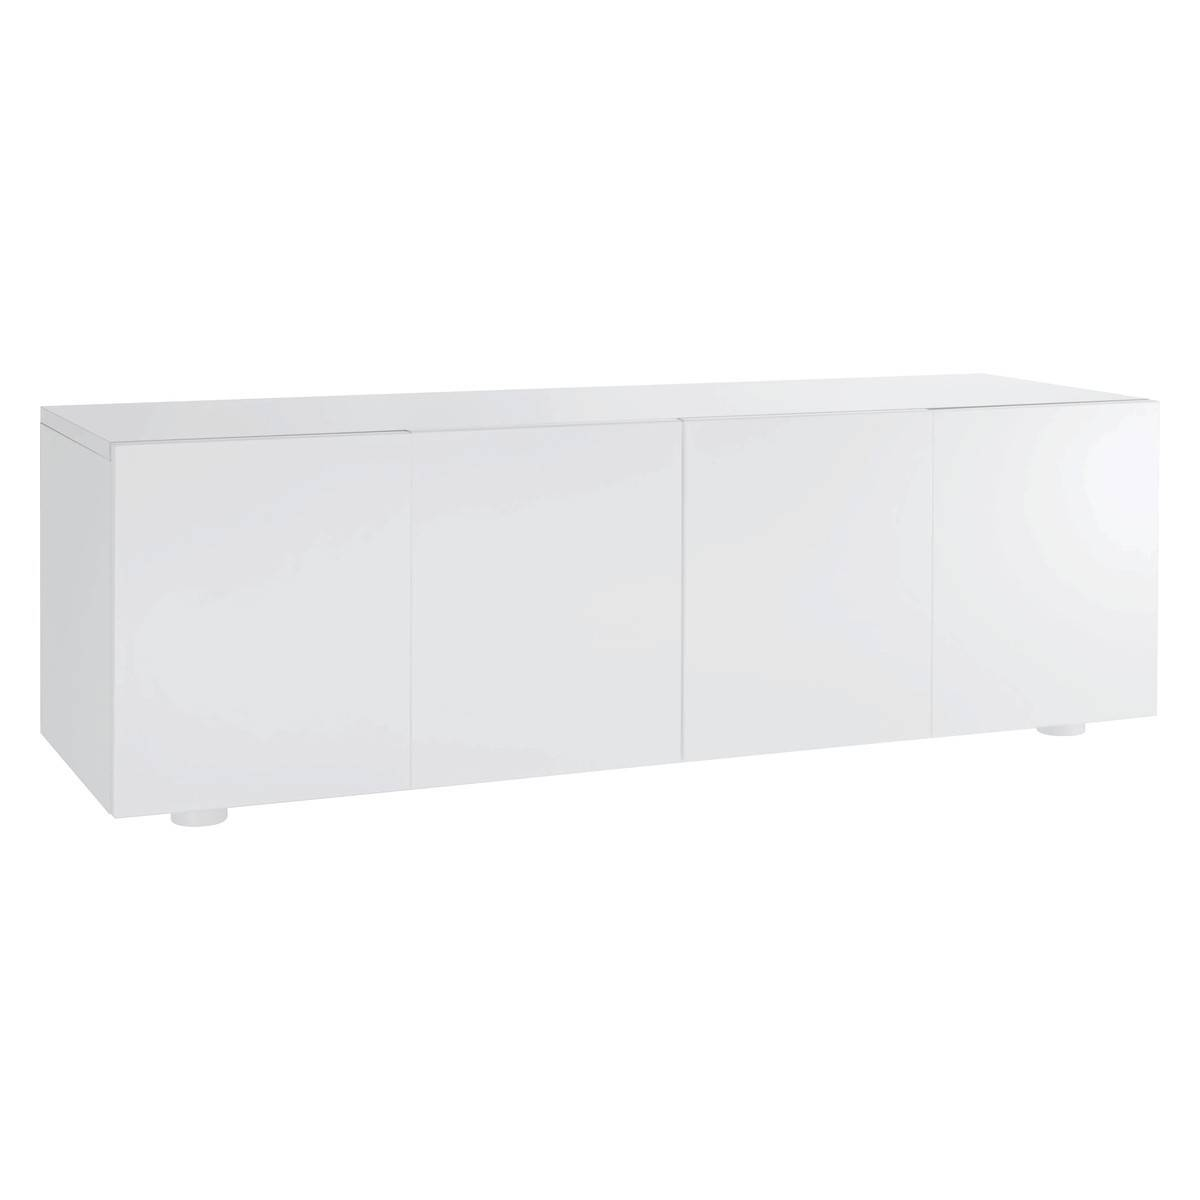 Aspen White High Gloss Long Cabinet | Buy Now At Habitat Uk intended for White High Gloss Sideboards (Image 1 of 30)